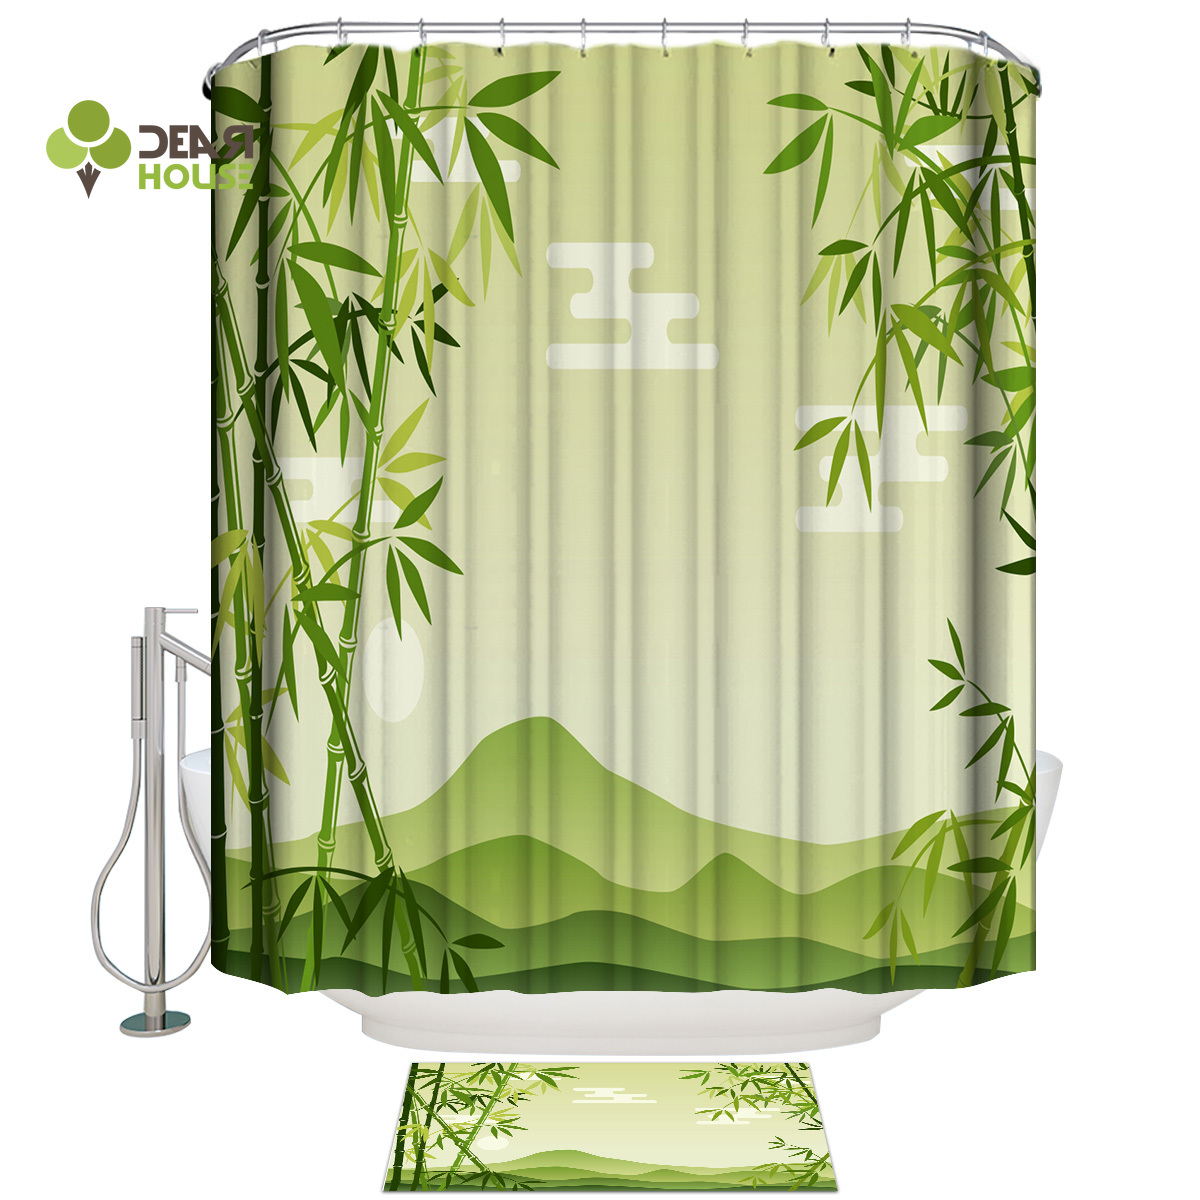 Dearhouse Chinese Style Of Green Bamboo